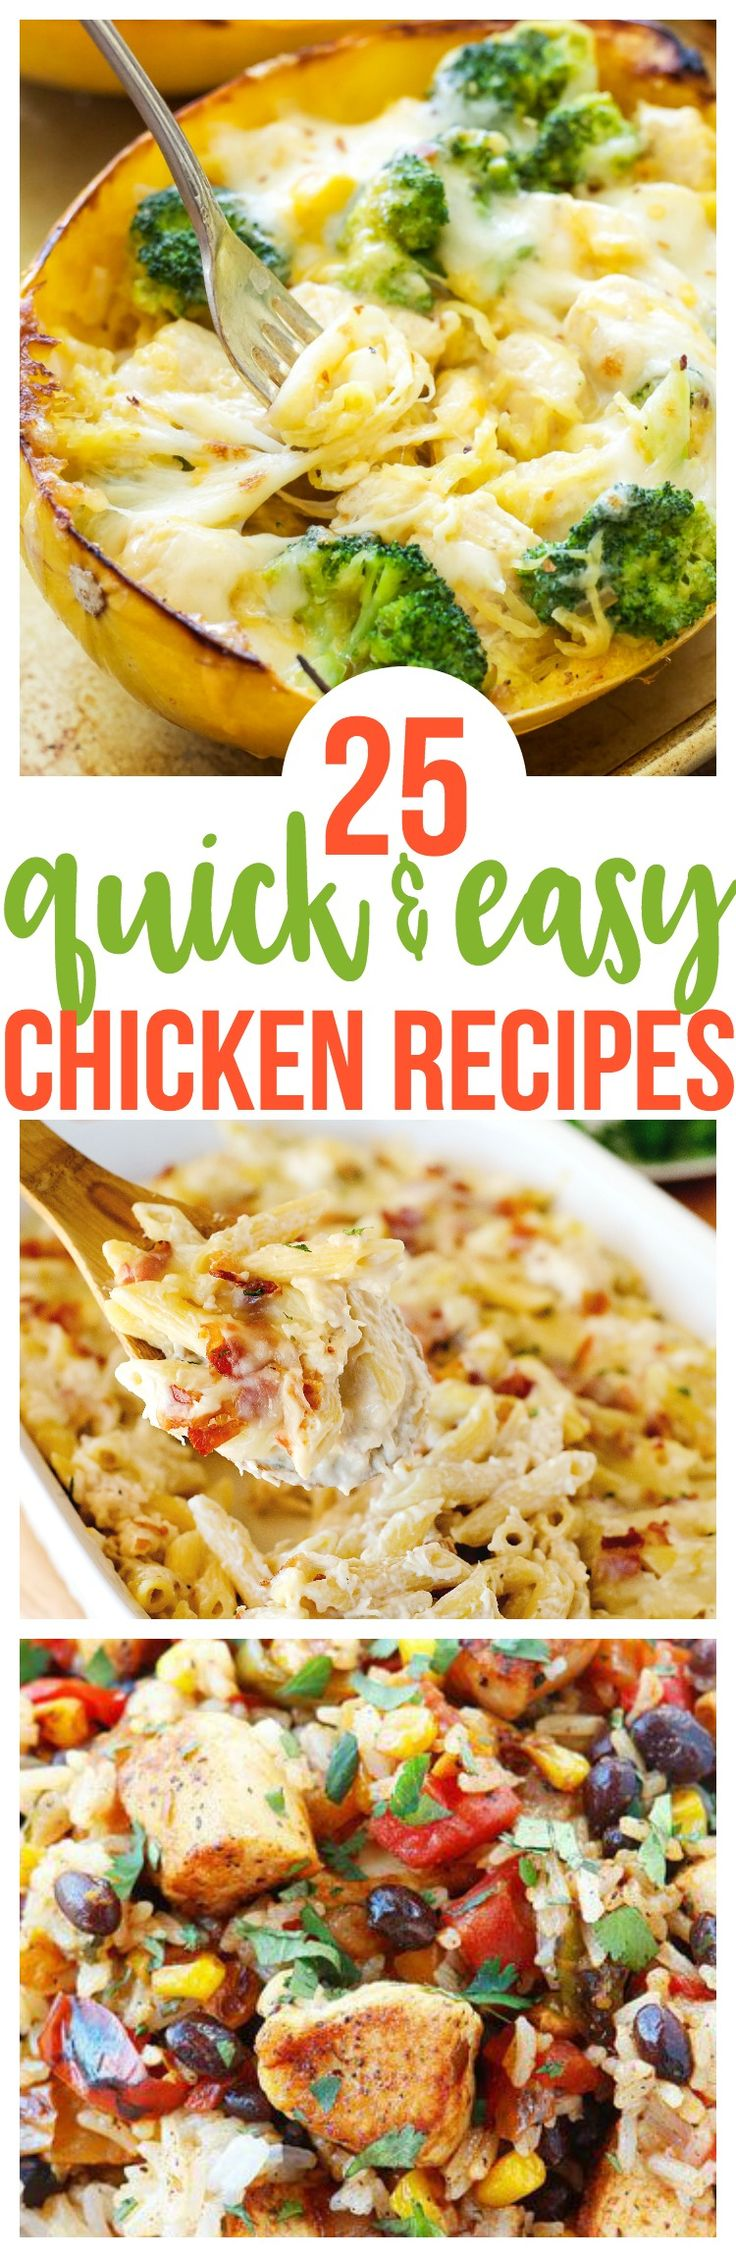 25 Quick and Easy Chicken Recipes must make meal planning your weekly meals or your workout meal plan. Family favorite for picky eaters   via @CourtneysSweets